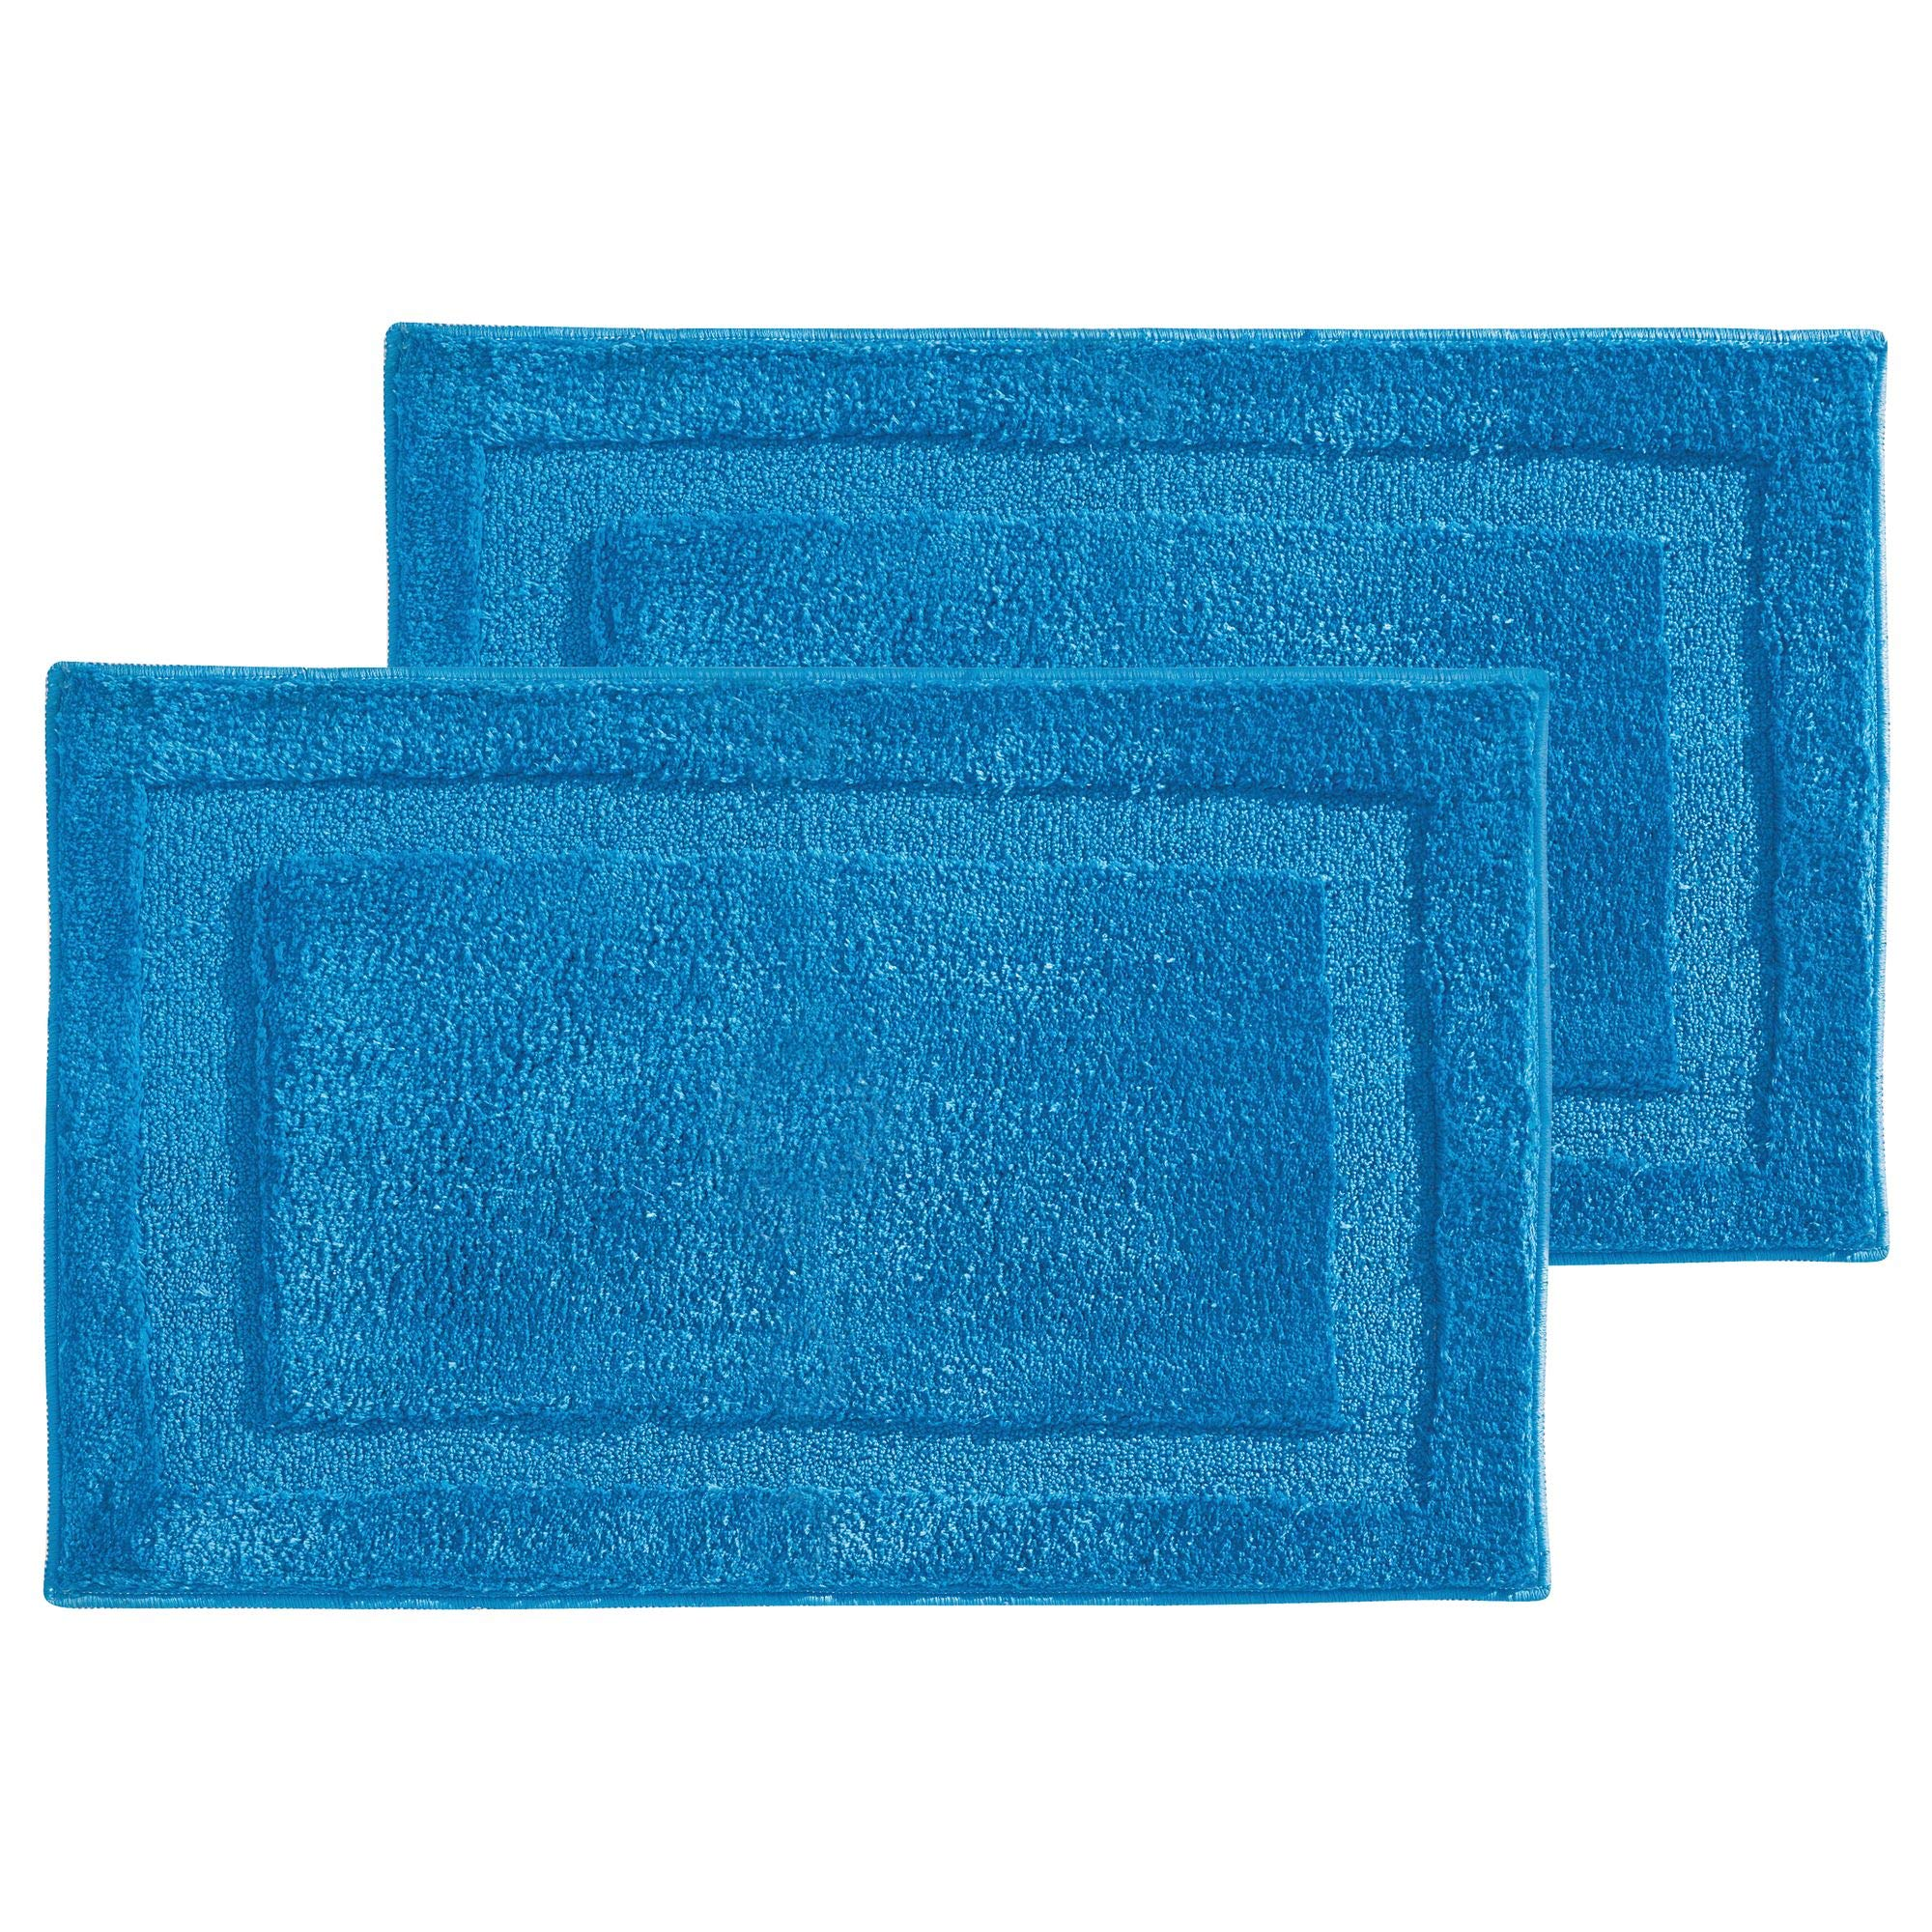 mDesign Soft Microfiber Polyester Non-Slip Rectangular Spa Mat, Plush Water Absorbent Accent Rug for Bathroom Vanity, Bathtub/Shower, Machine Washable - 34'' x 21'' - Pack of 2, Azure Blue